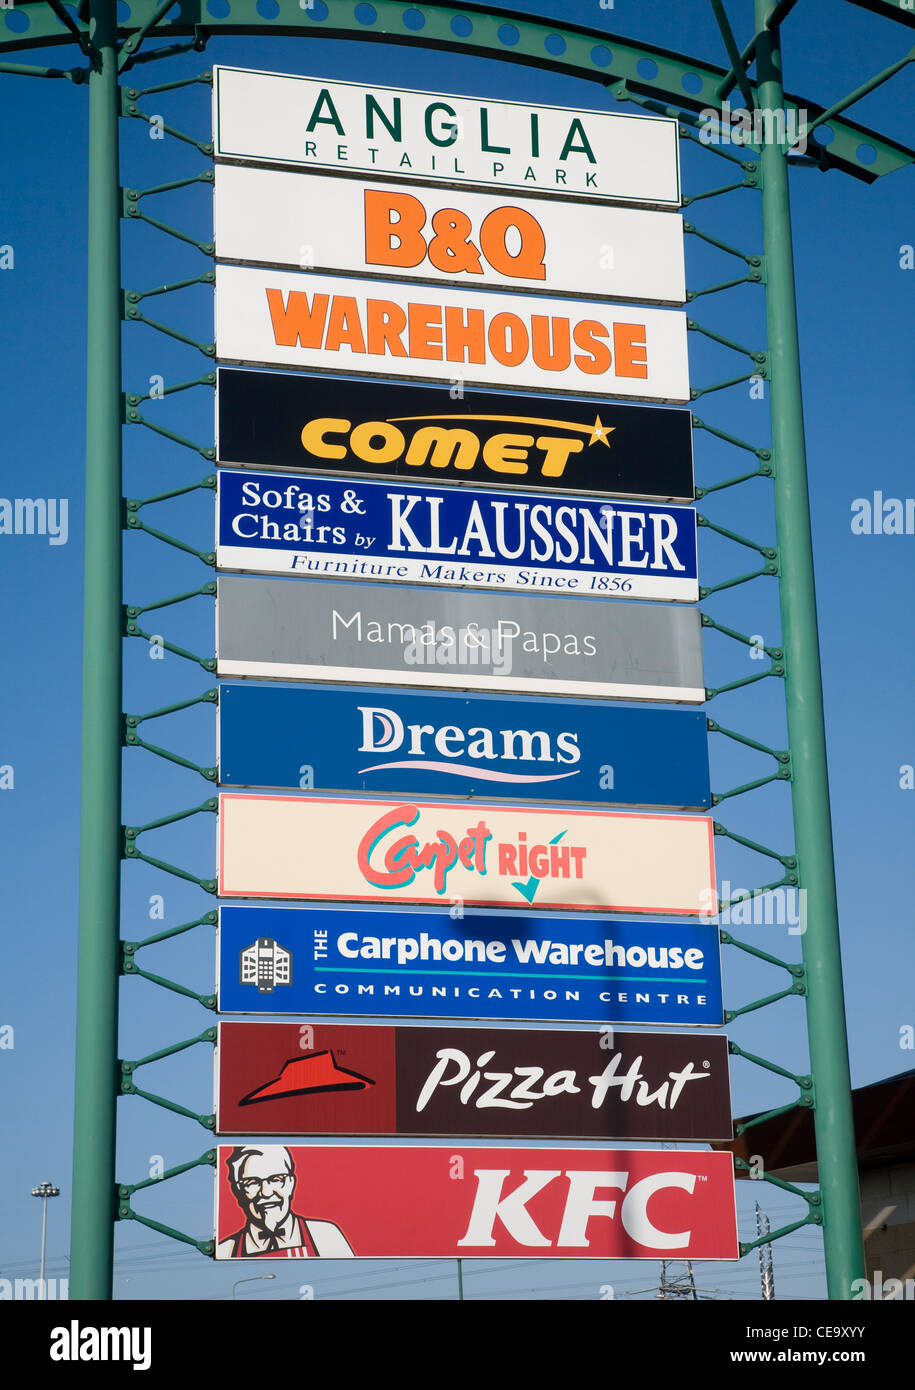 Sign listing shops Anglia Retail Park, Ipswich, Suffolk, England - Stock Image